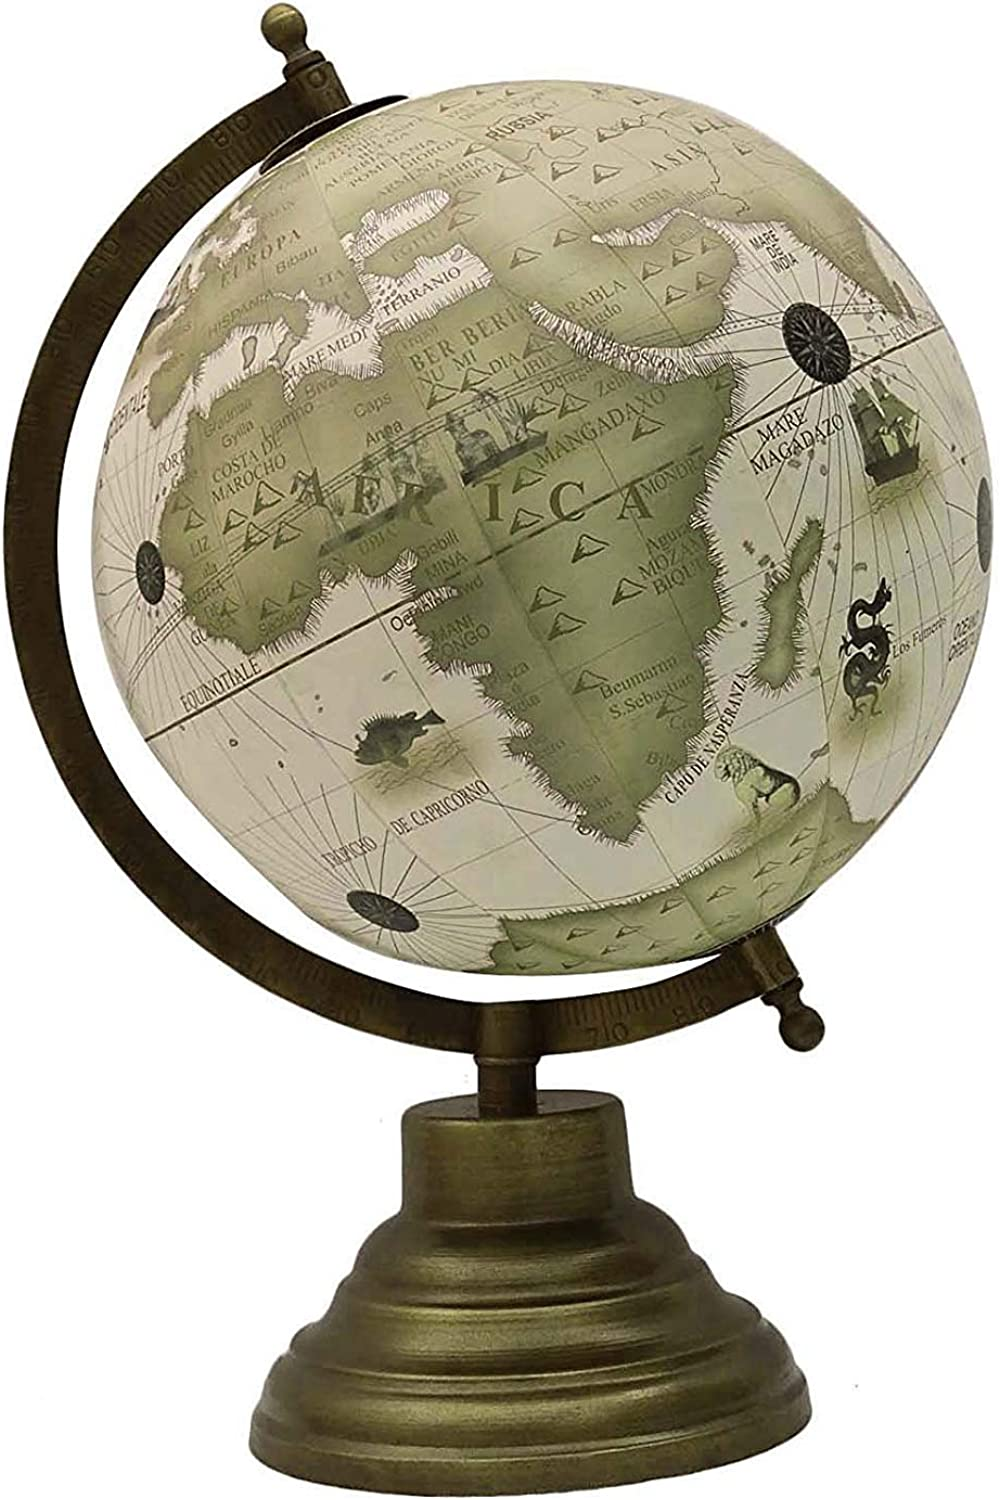 12.7  redating Desktop Earth White Ocean Globe World Geography Table Decor by Globes HubPerfect for Home, Office & Classroom